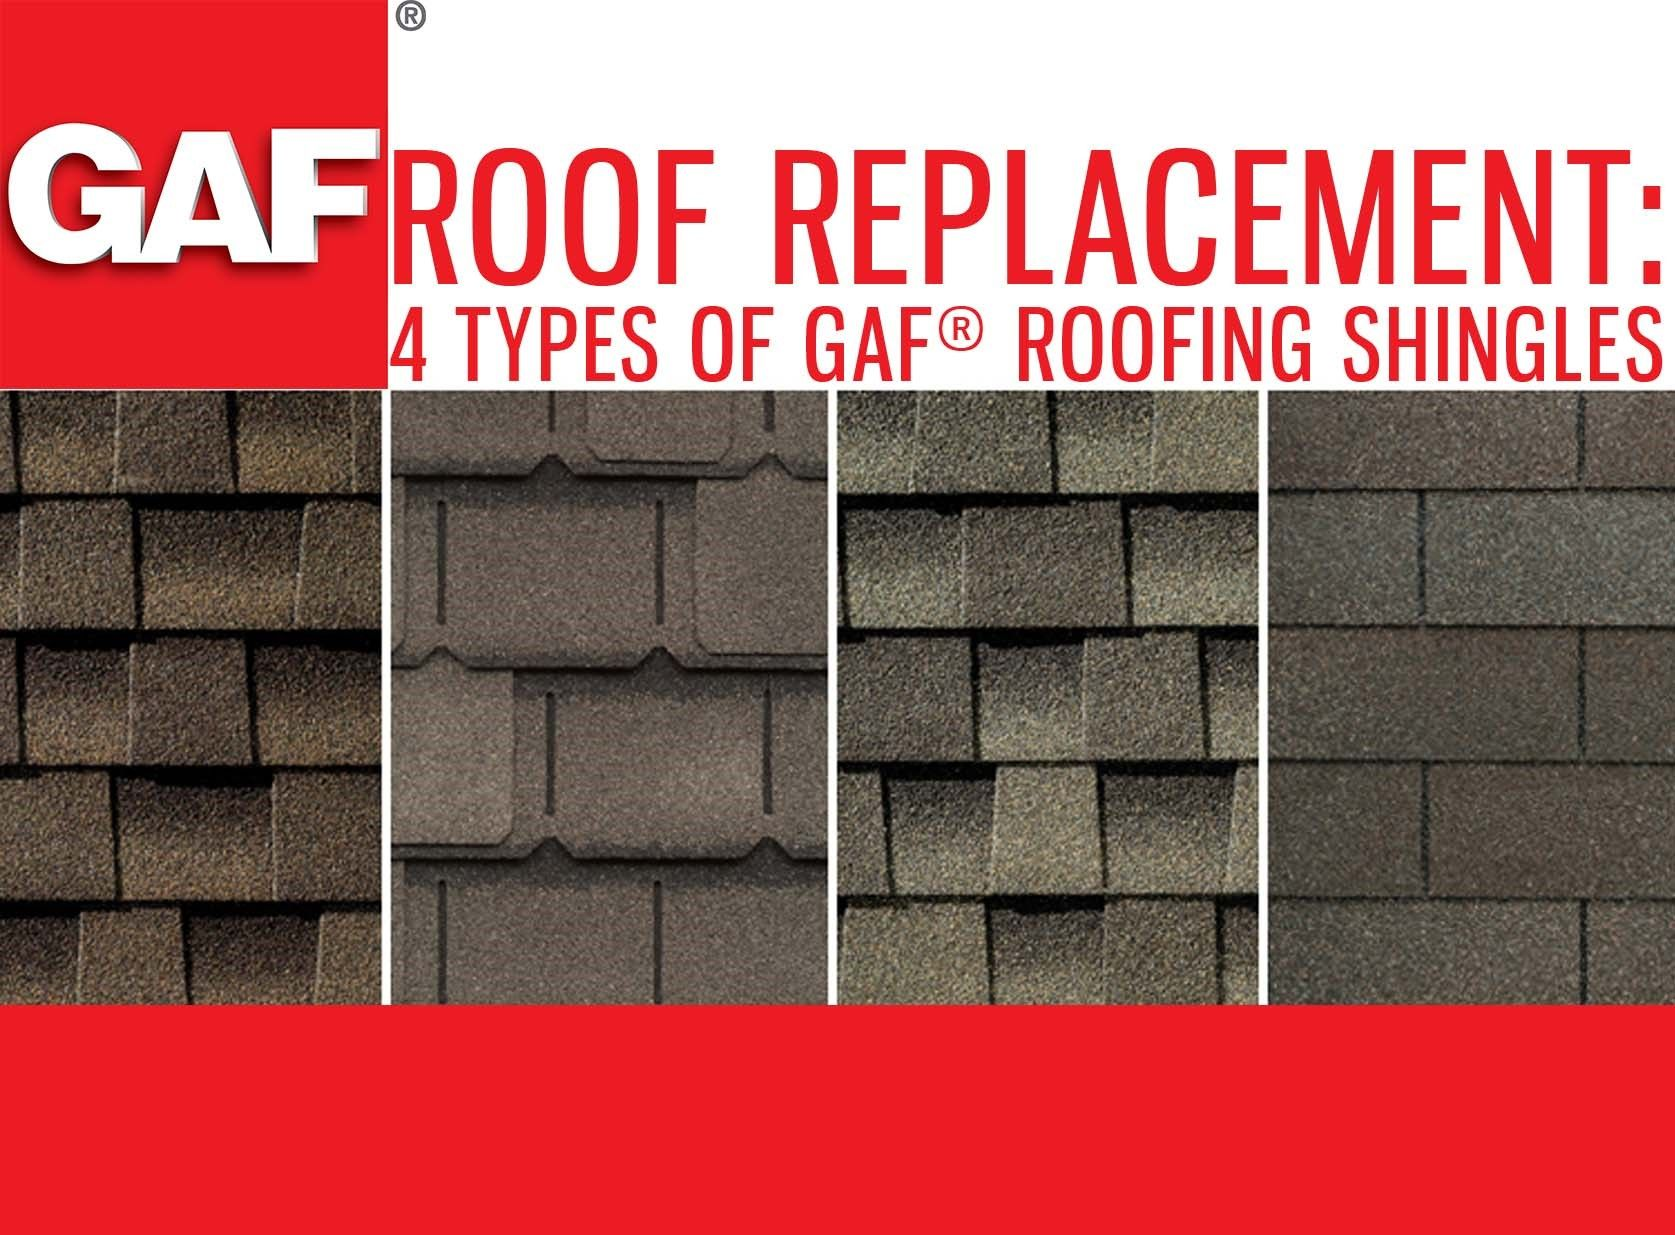 Collage of new roofing shingle types.